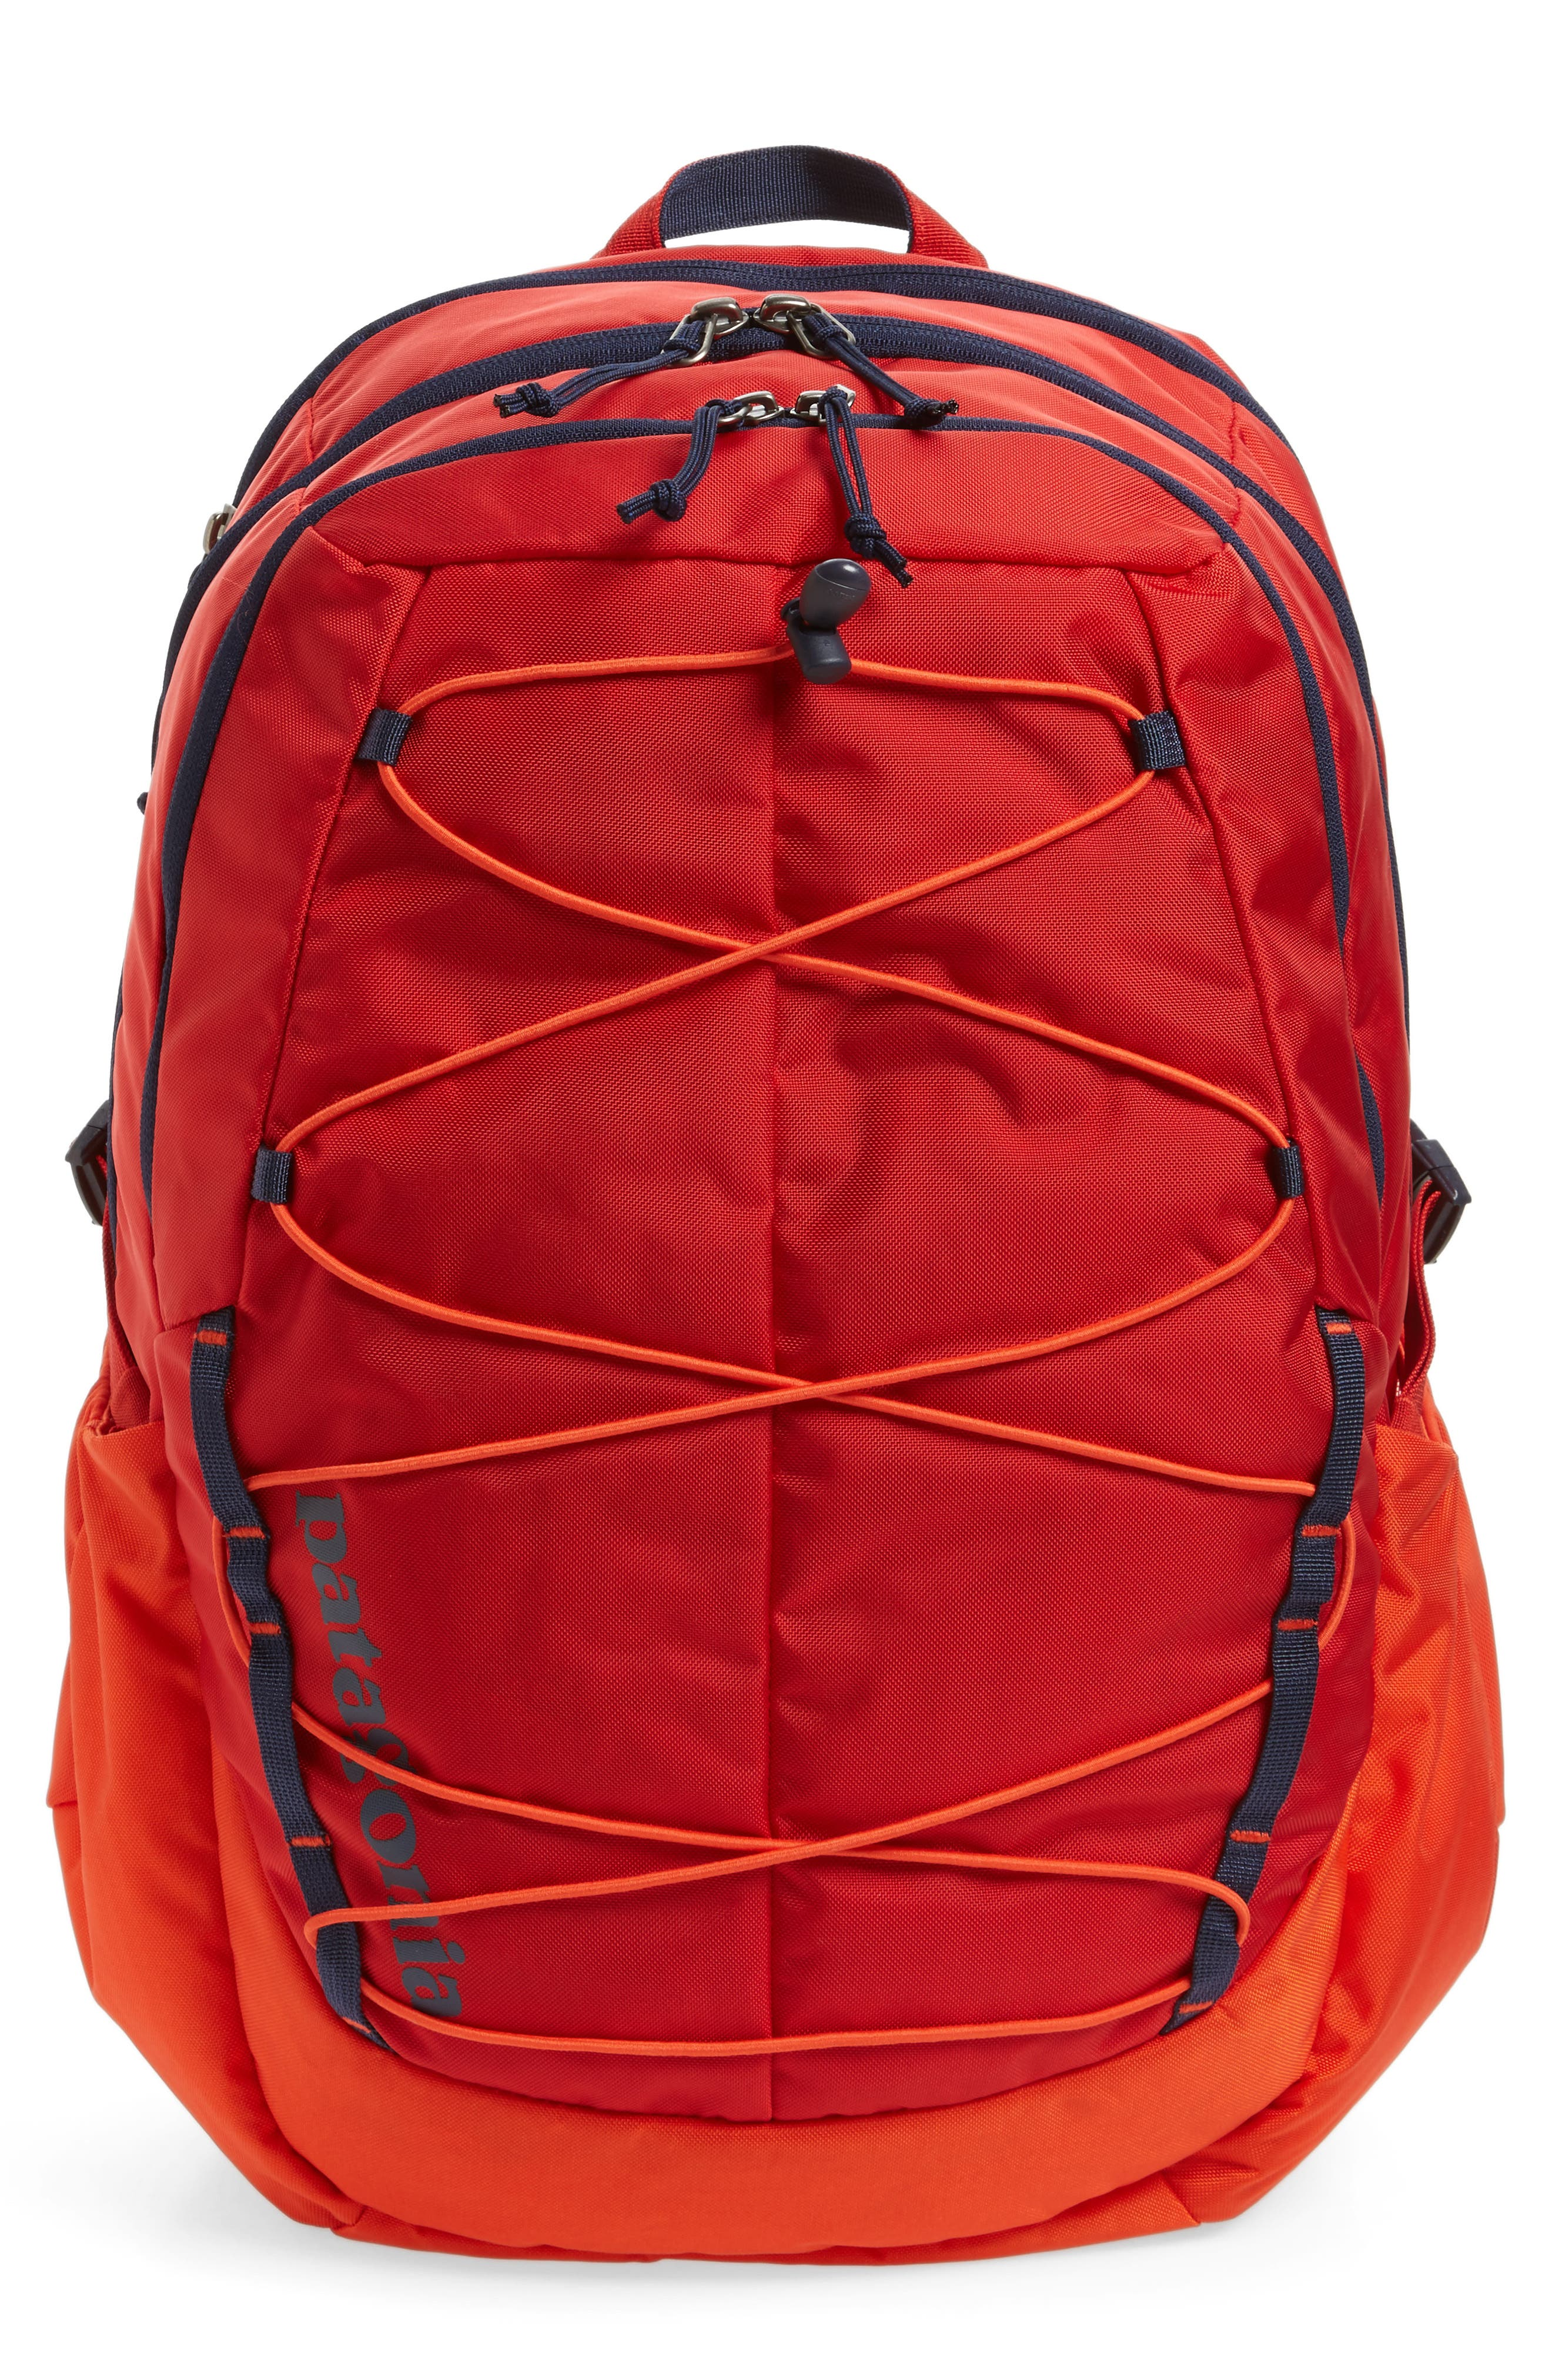 30L Chacabuco Backpack,                         Main,                         color, Paintbrush Red